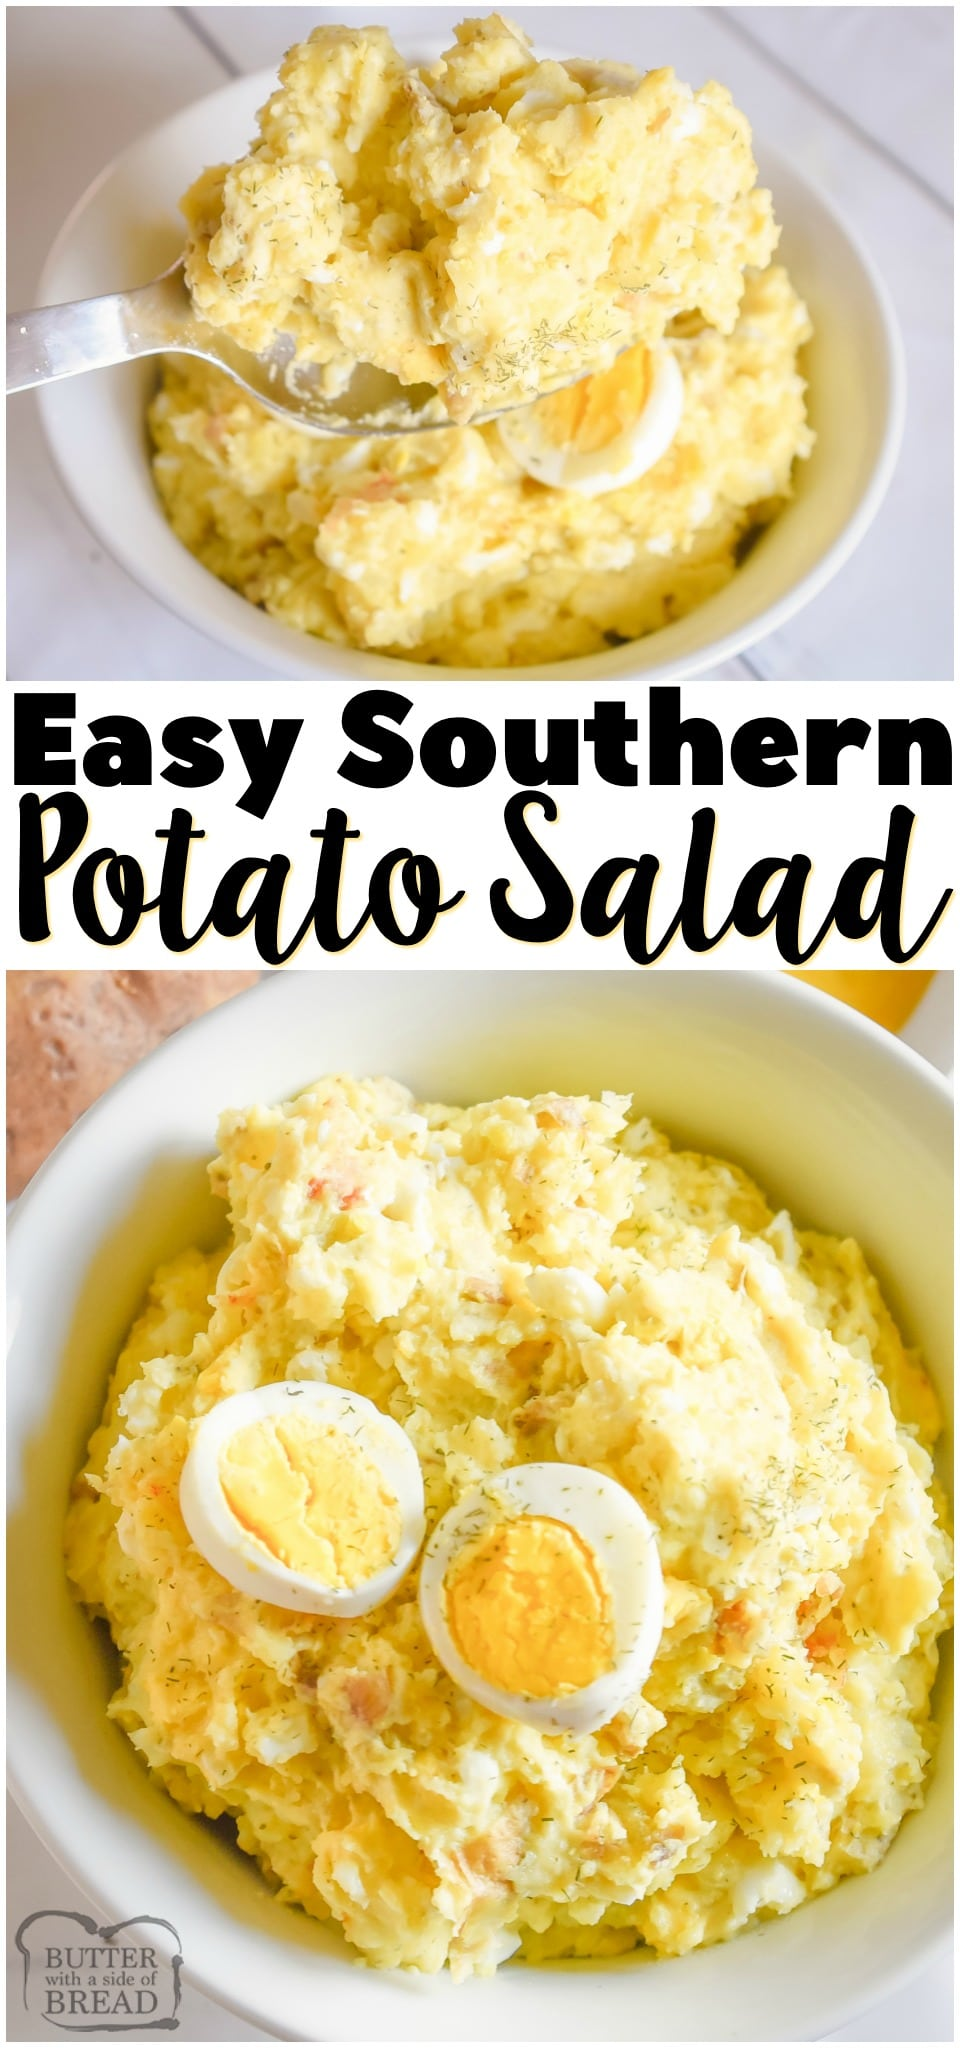 Southern Potato Salad recipeperfect for summer bbq's and get-togethers! Easy potato salad made with Yukon gold potatoes, hard boiled eggs and a simple tangy dressing.#salad #potatoes #potatosalad #southern #recipe #bbq #summer from BUTTER WITH A SIDE OF BREAD